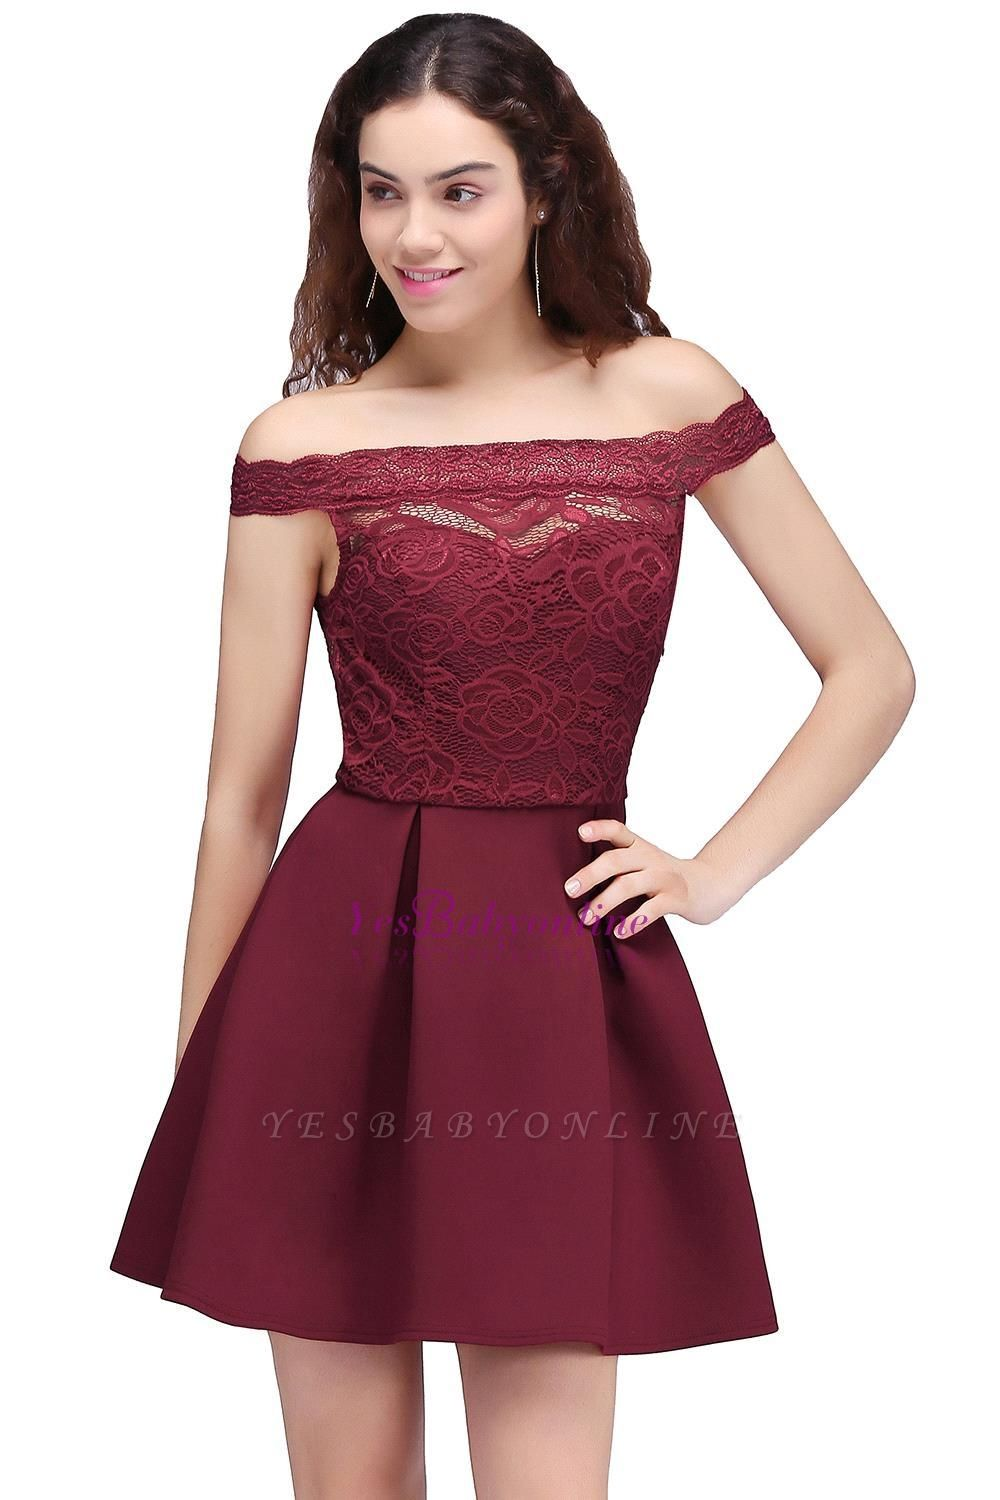 A-Line Off-the-shoulder Short Lace Burgundy Homecoming Dress